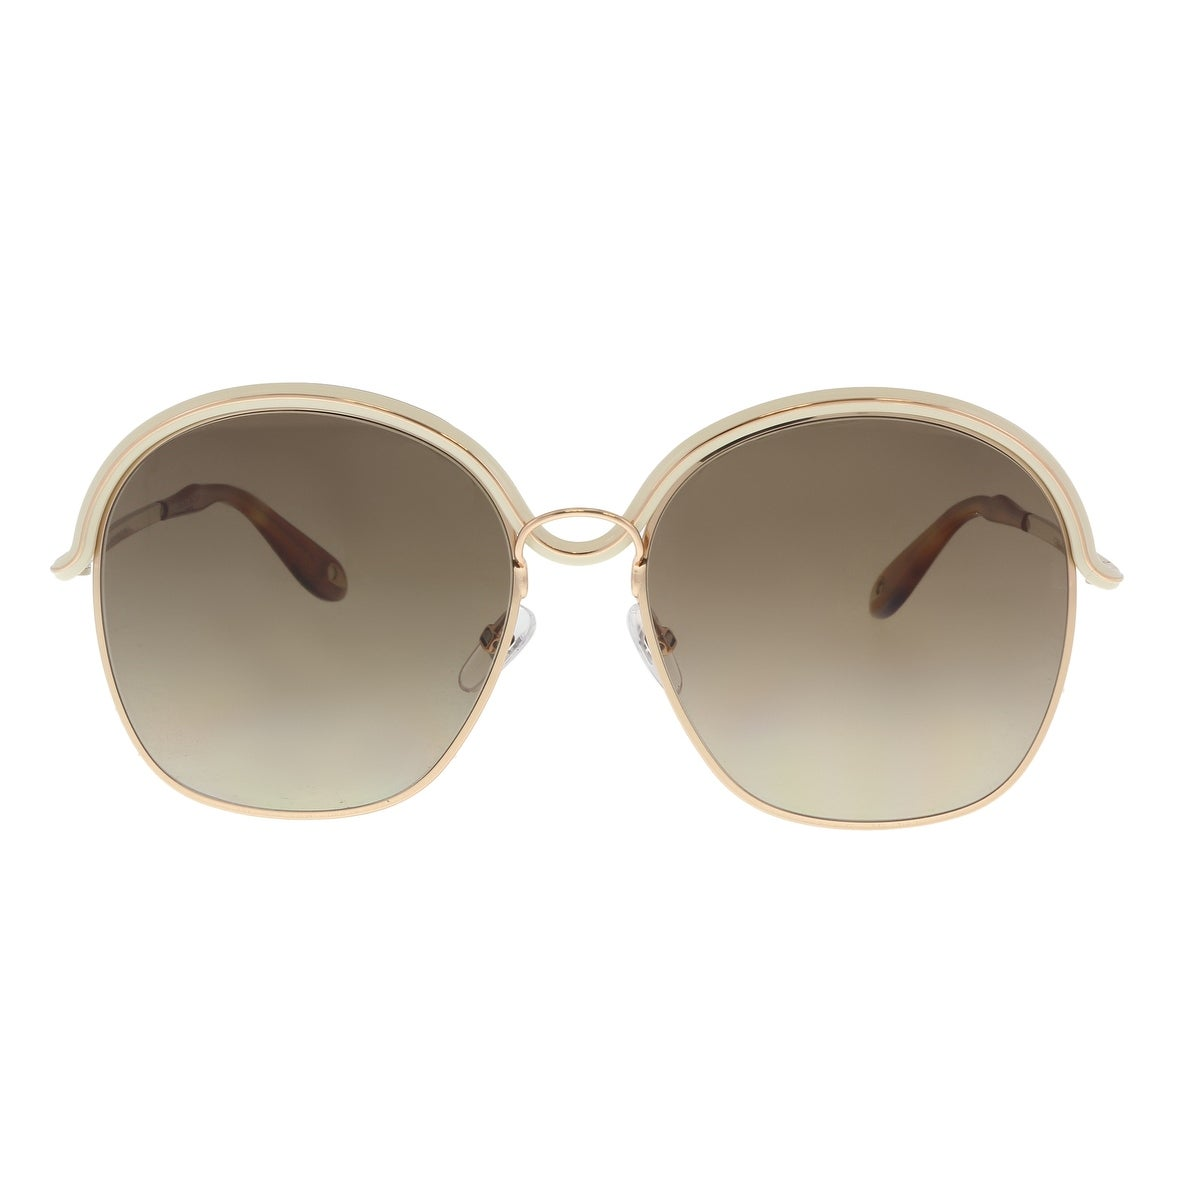 bd70281d8c66 Shop Givenchy GV7030S 0J1O Gold Beige Oval Sunglasses - 58-17-140 - Free  Shipping Today - Overstock - 21158338